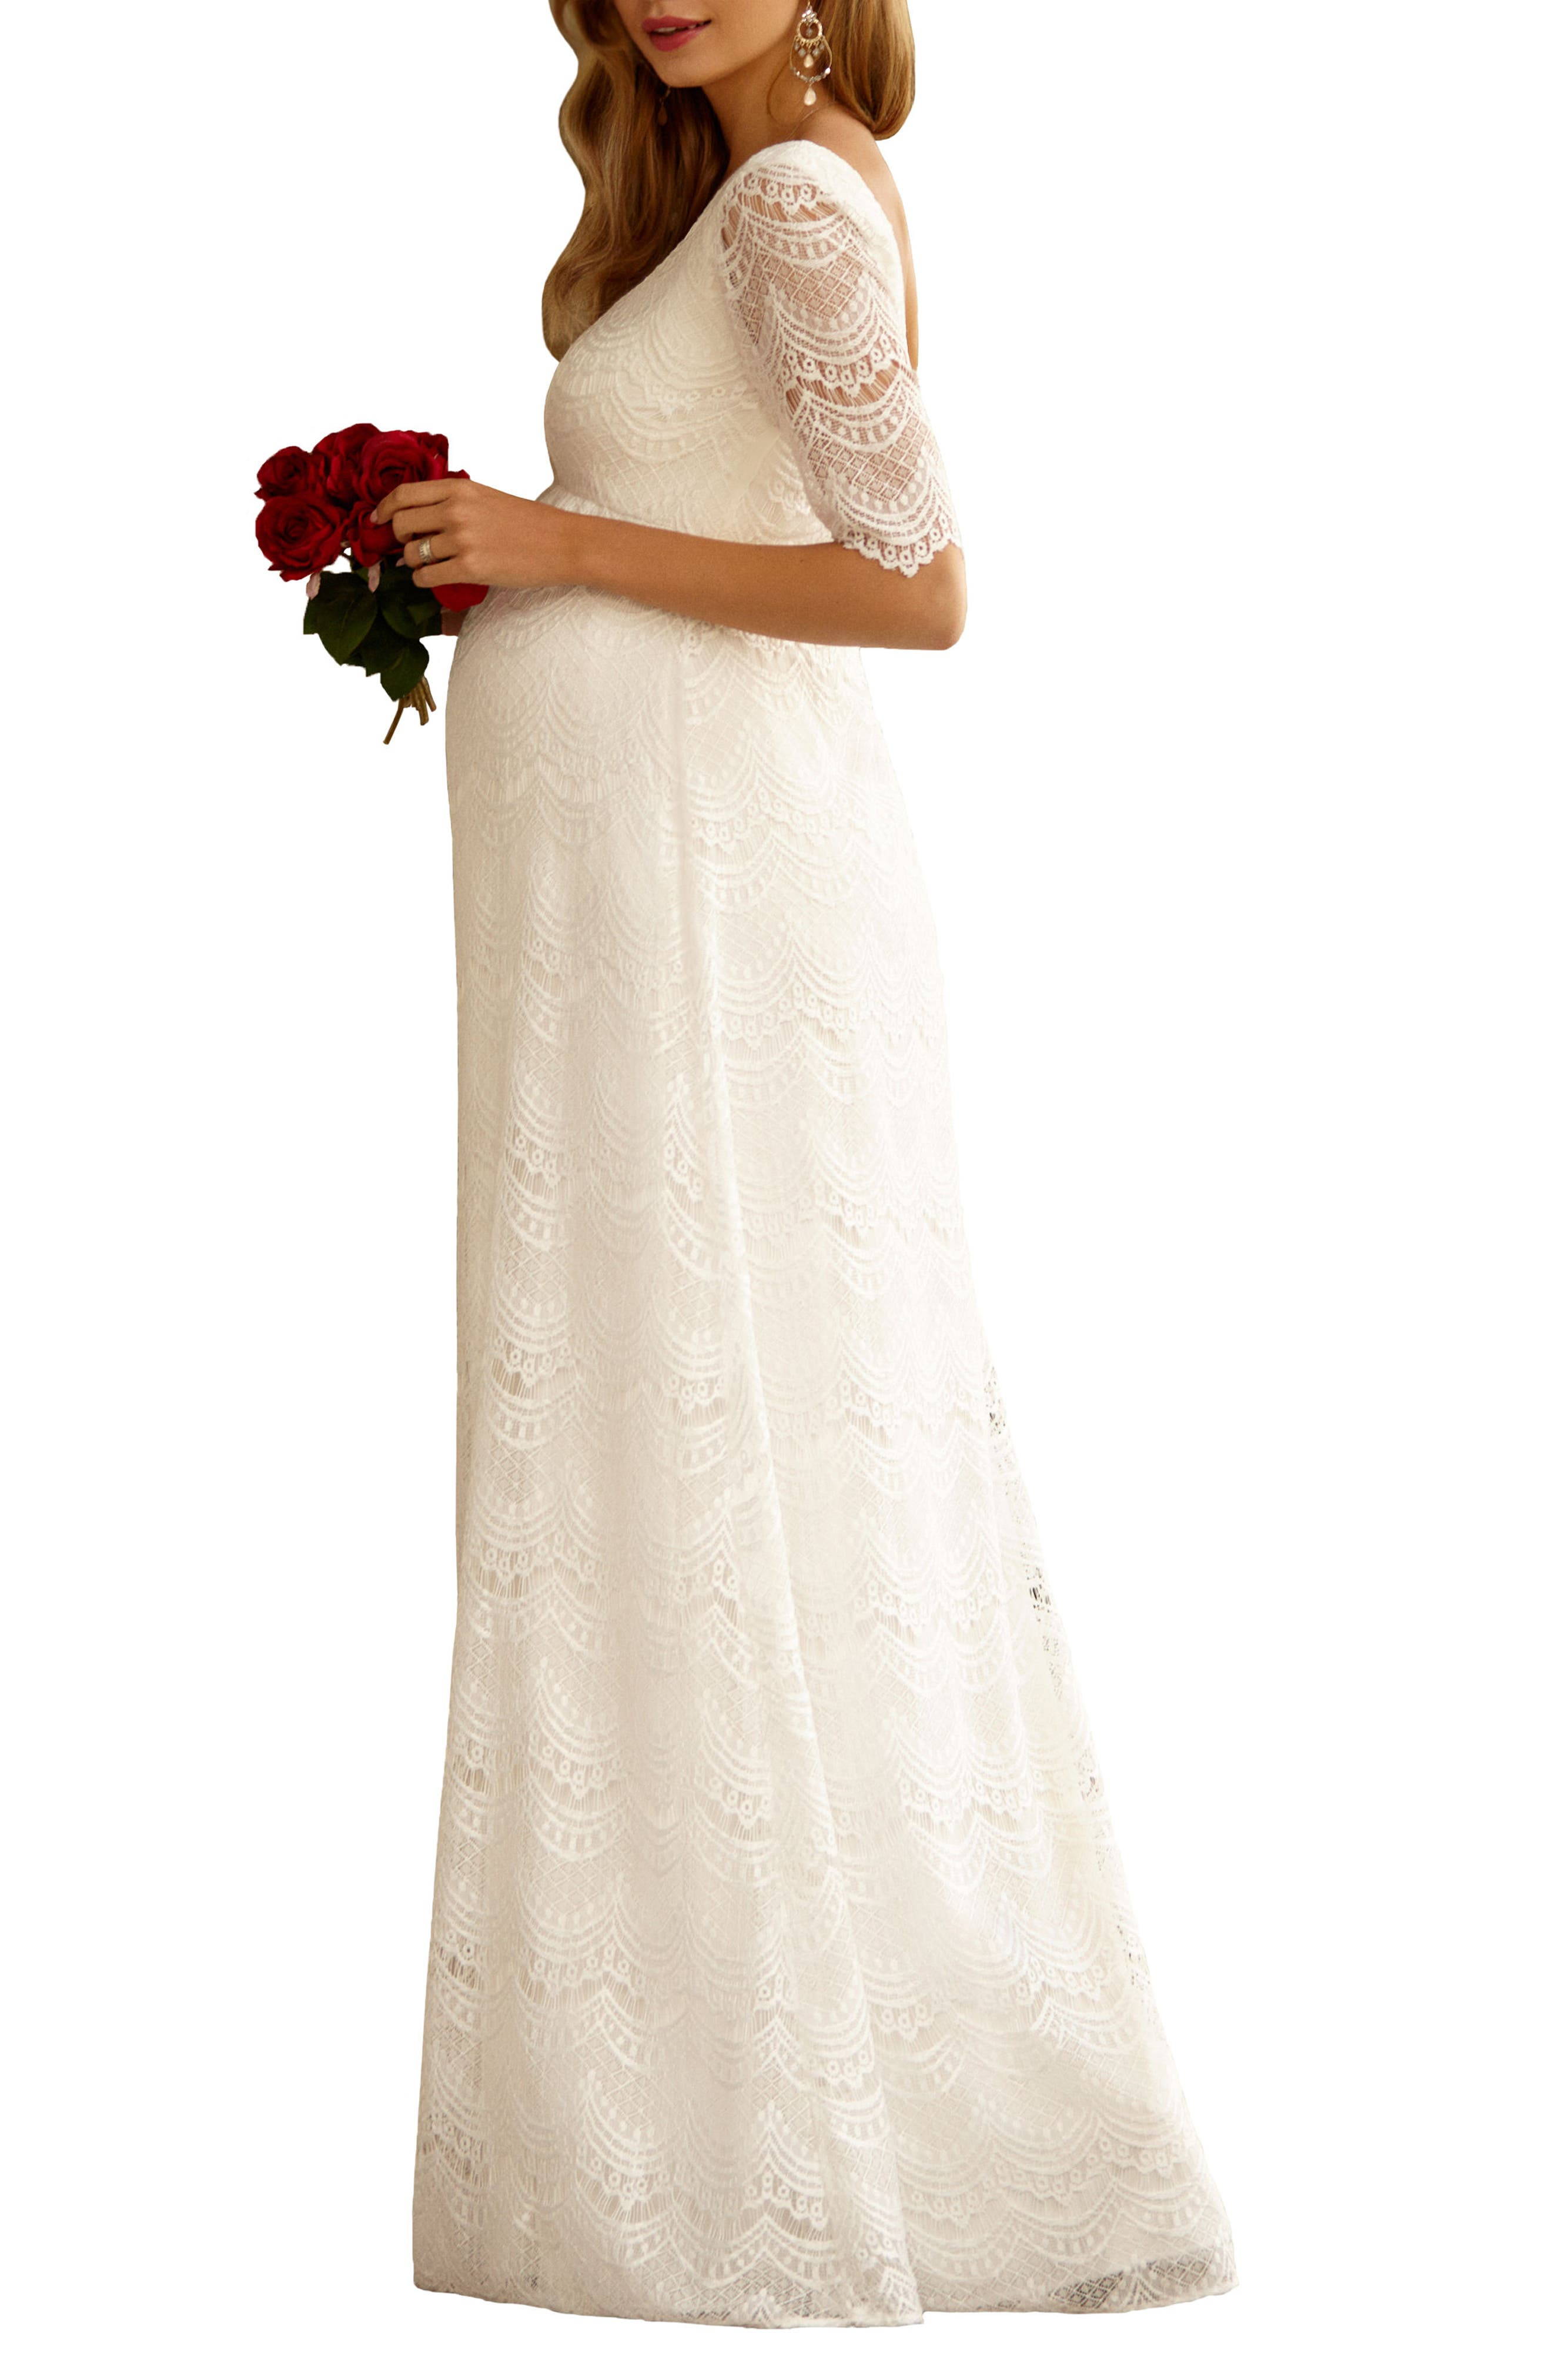 Verona Maternity Gown,                             Alternate thumbnail 2, color,                             BRIGHT IVORY